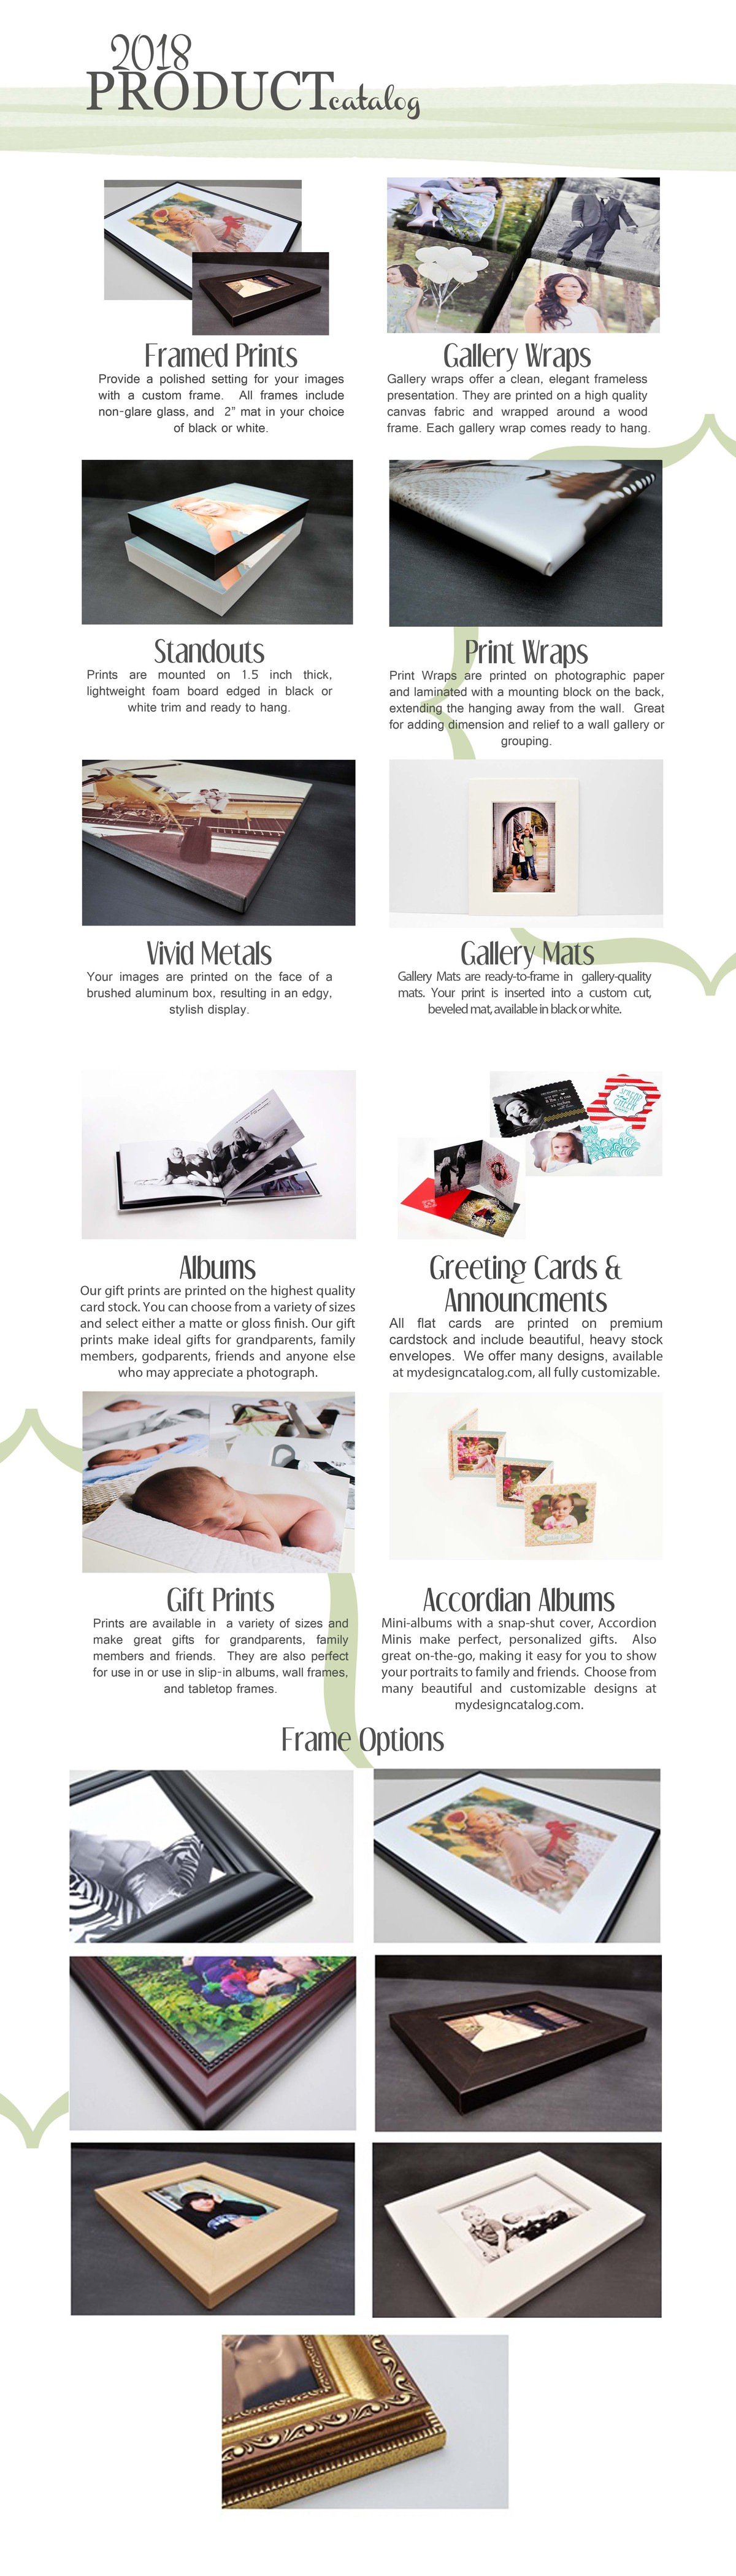 Print, Digital, and Wall Art Products 2